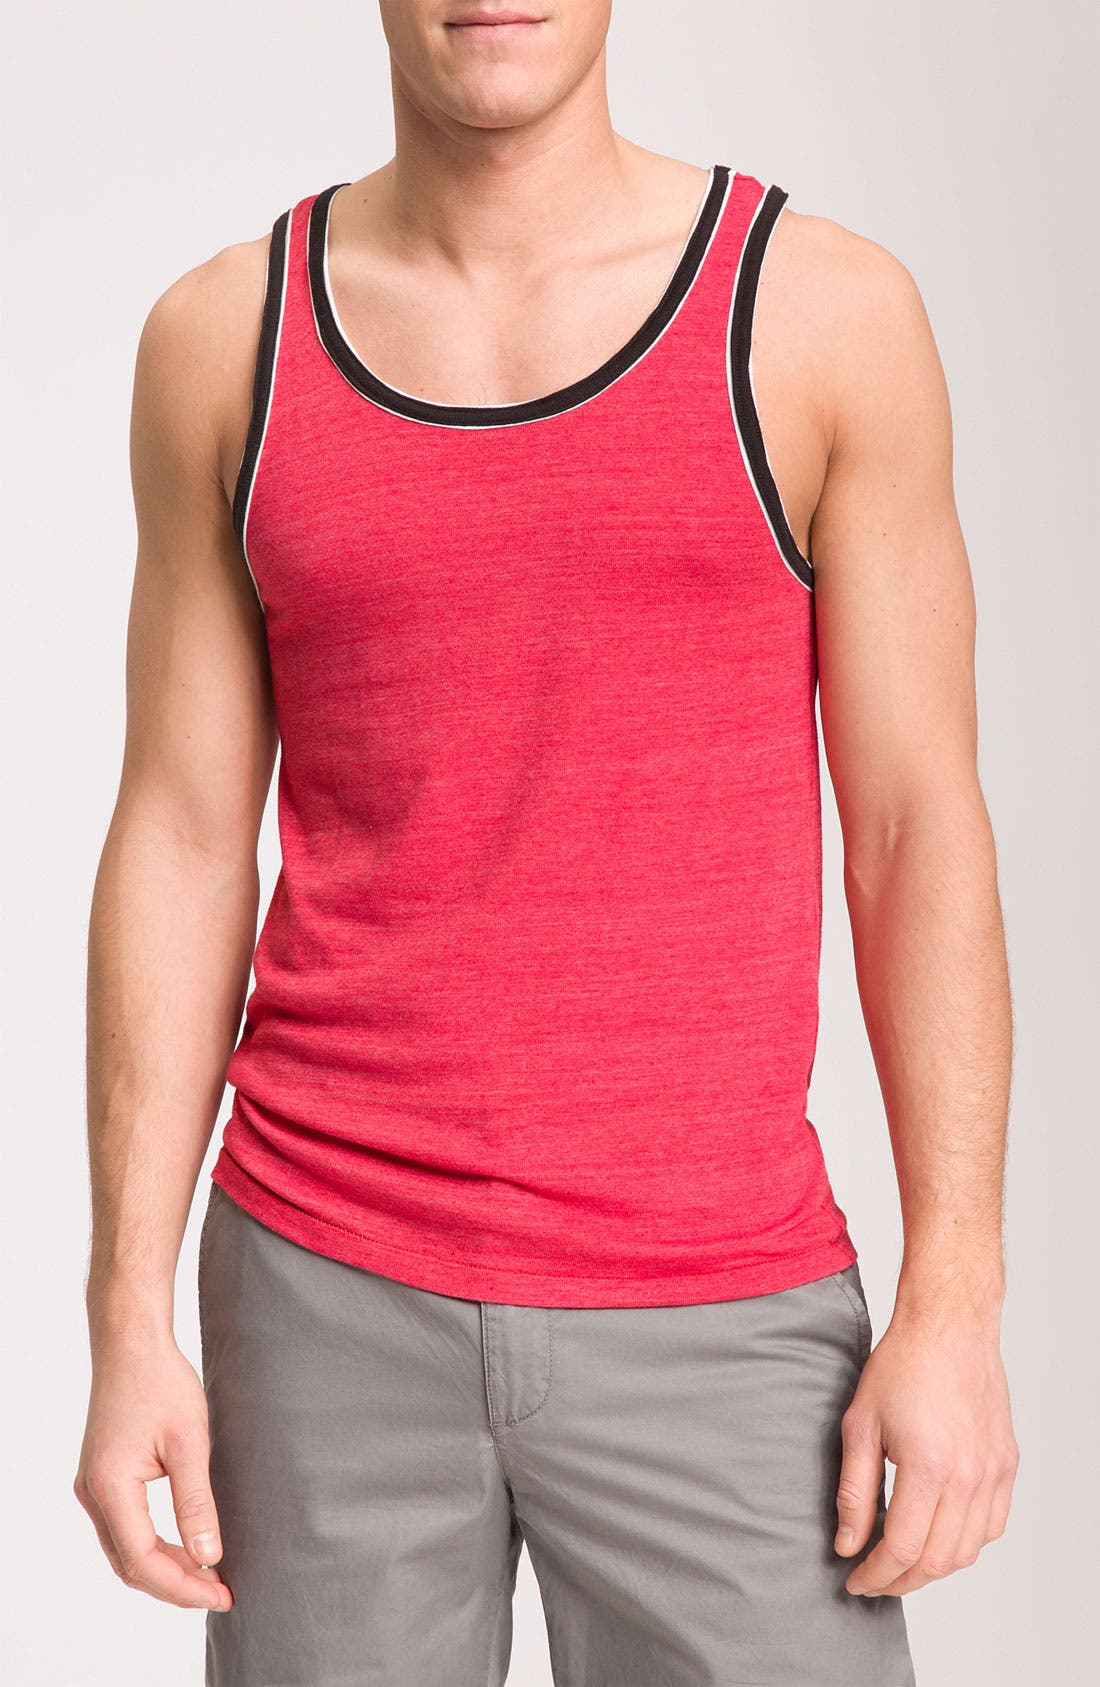 Main Image - Alternative Double Ringer Tank Top